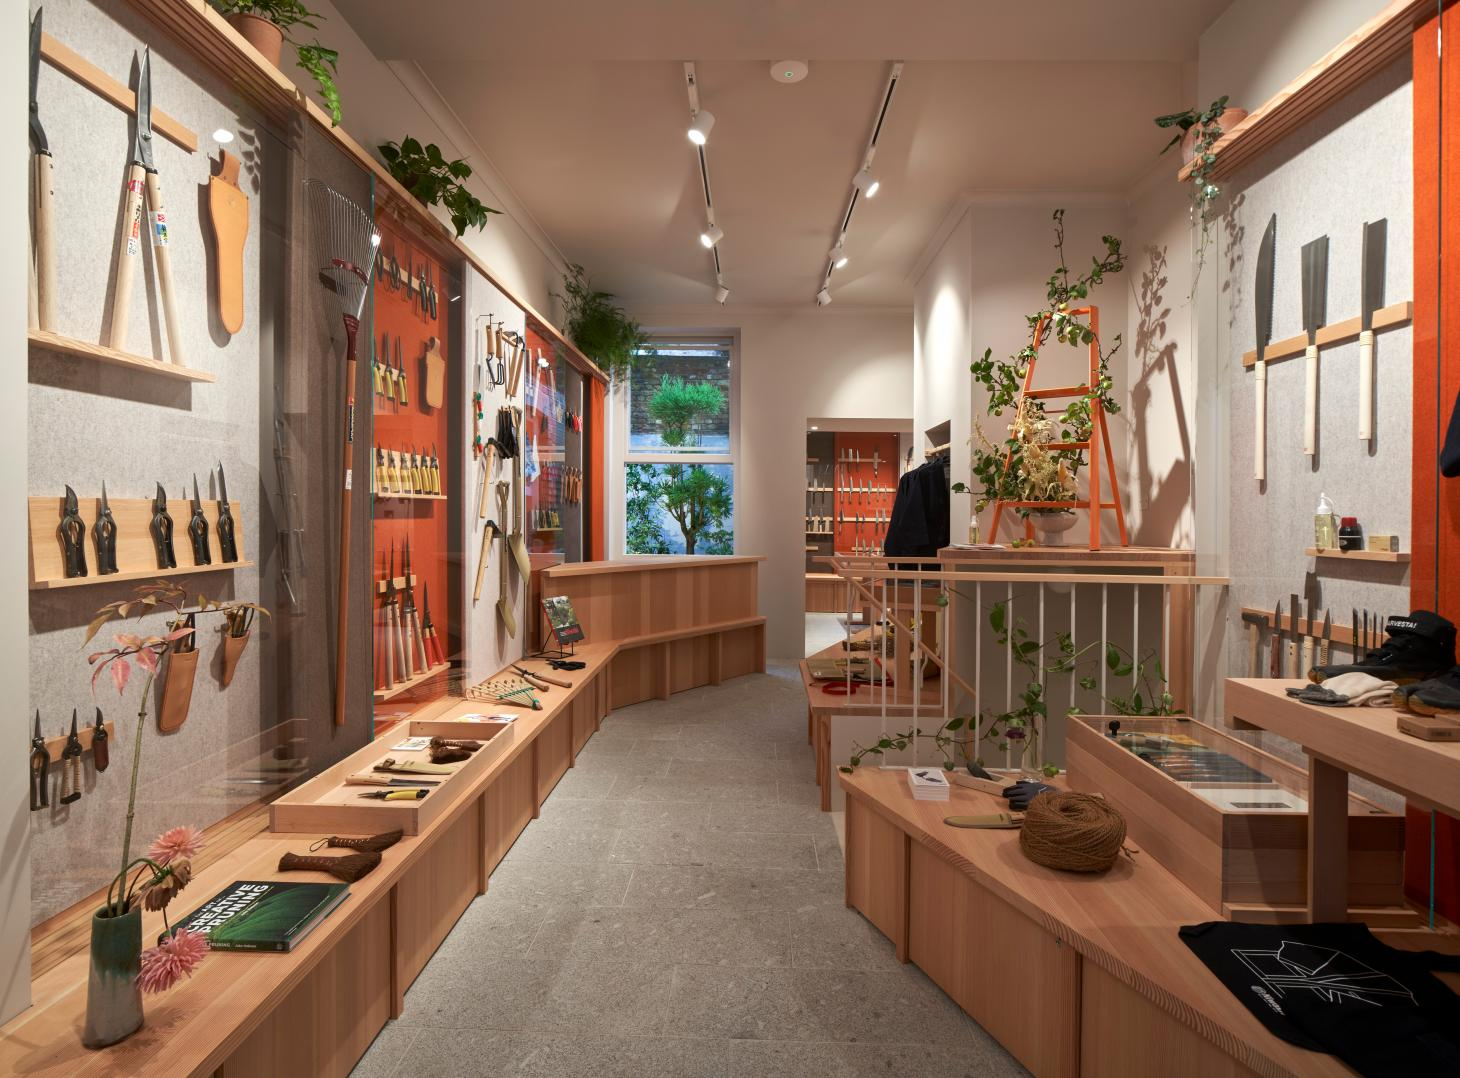 Interiors of Niwaki shop for Japanese gardening tools and workwear on London's Chiltern Street